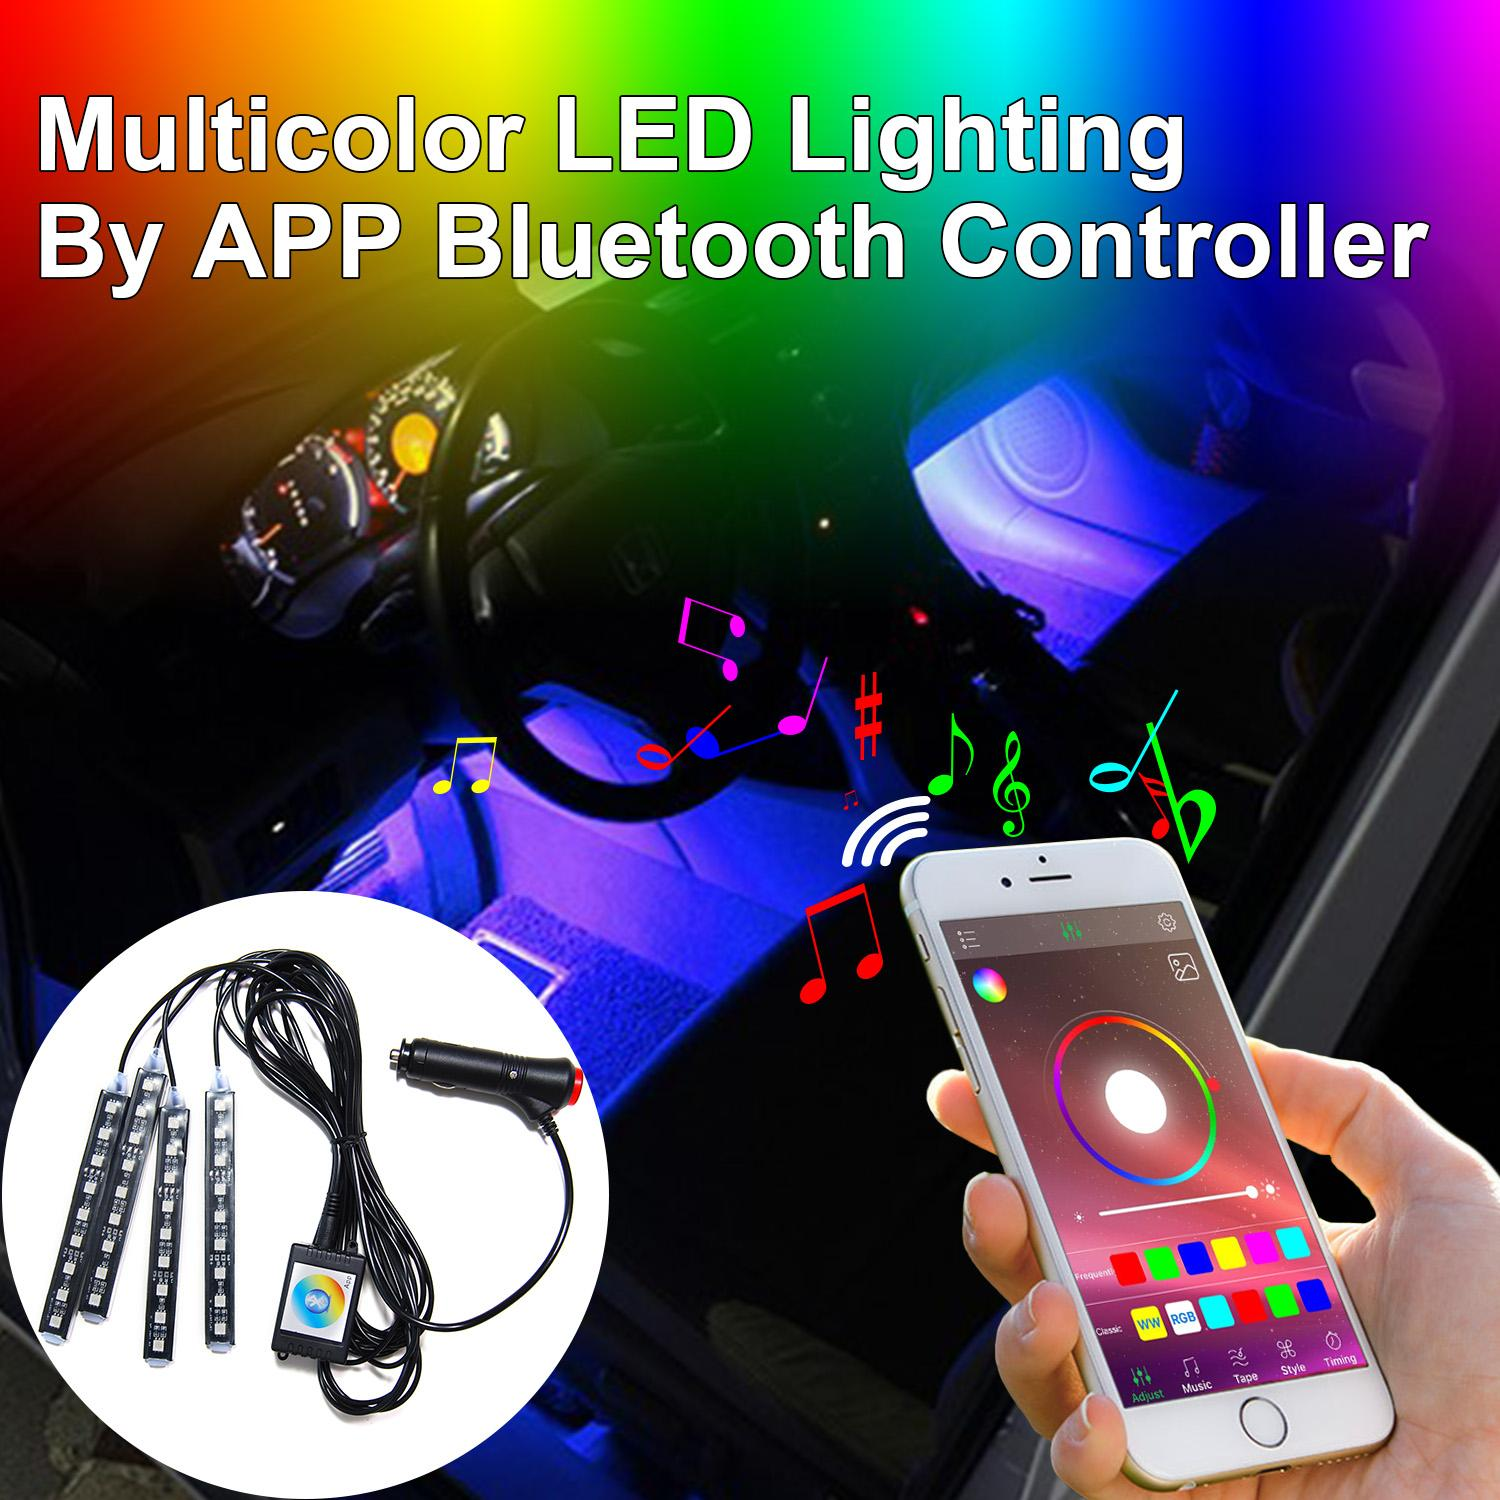 2018 addmotor led strip lights 48 multicolor rgb car interior lights 2018 addmotor led strip lights 48 multicolor rgb car interior lights neon led light bluetooth smartphone app controller from addmotornumber aloadofball Images